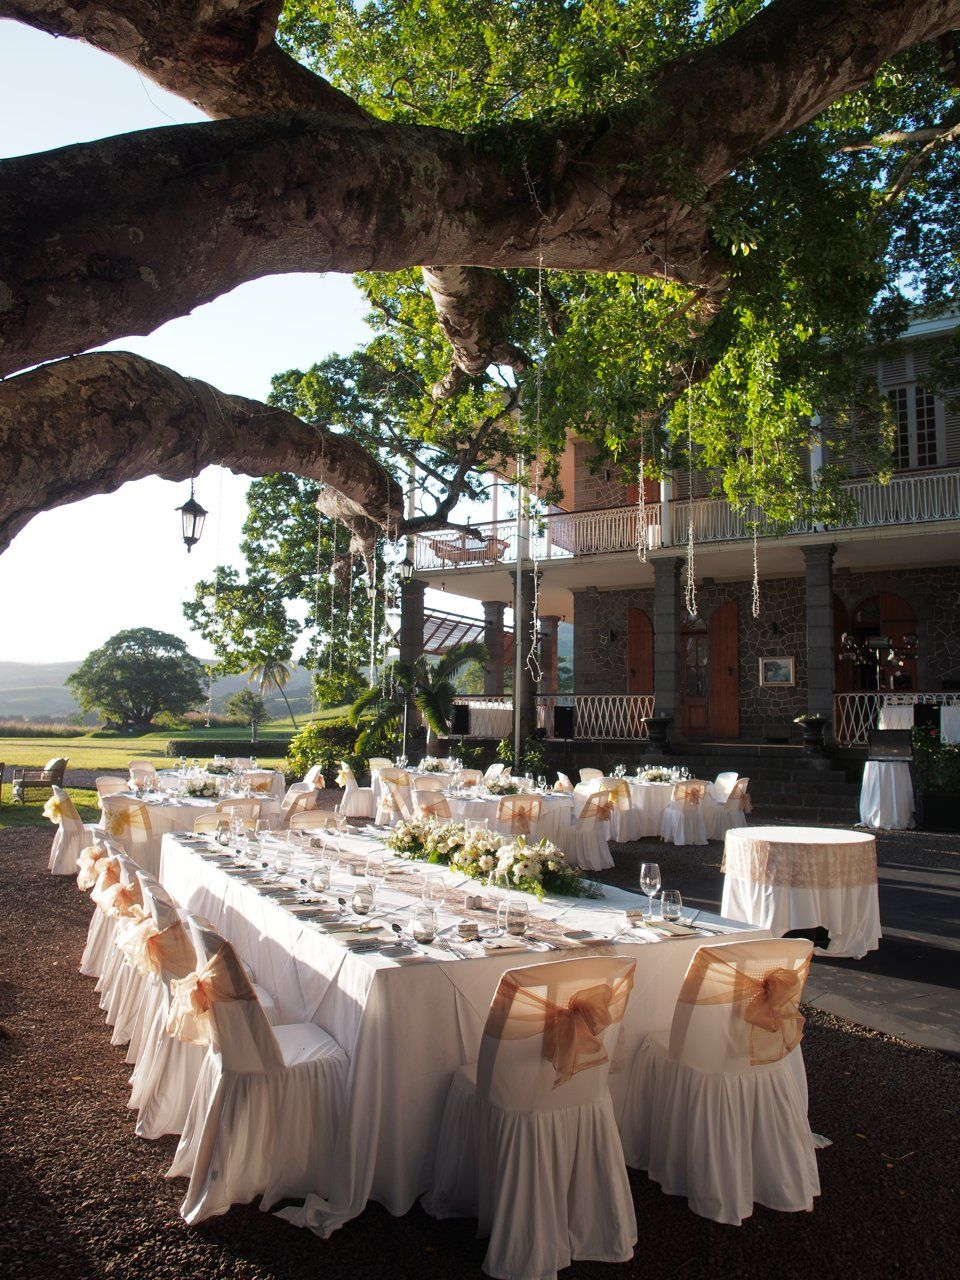 Wedding reception in the gardens of Le Chateau de Bel Ombre at